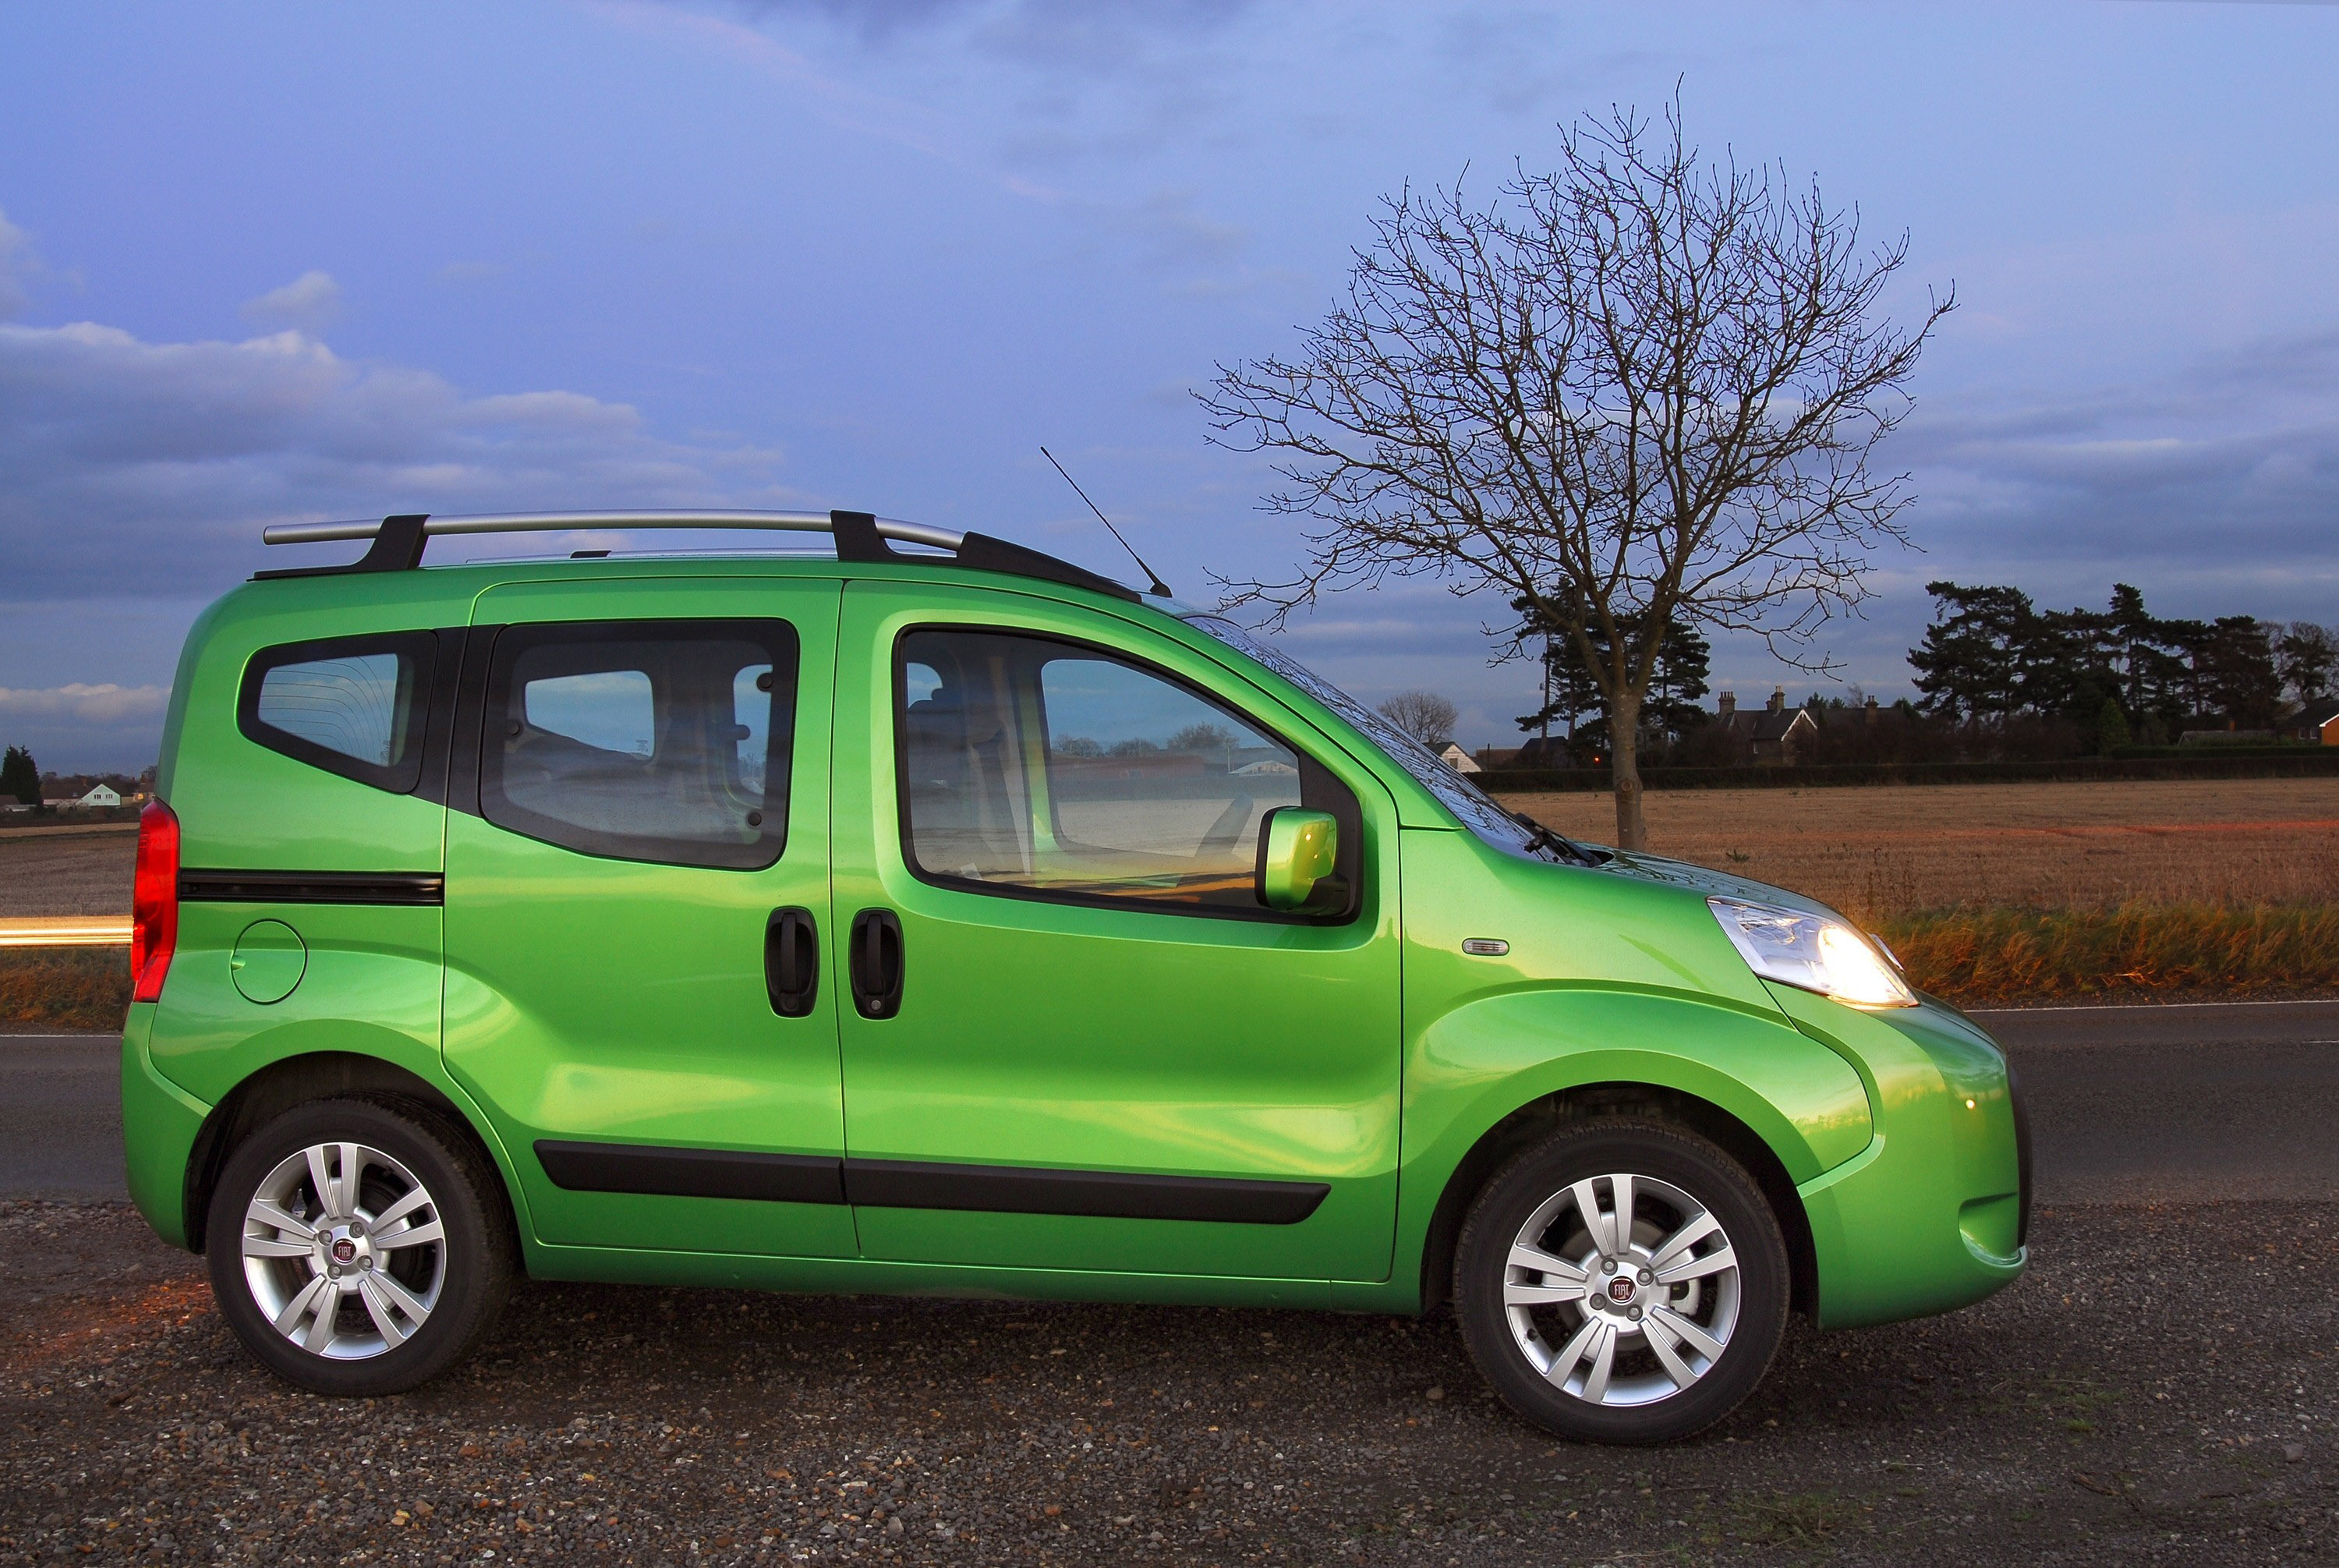 Fiat Qubo Stylish Family Motoring Made Simple